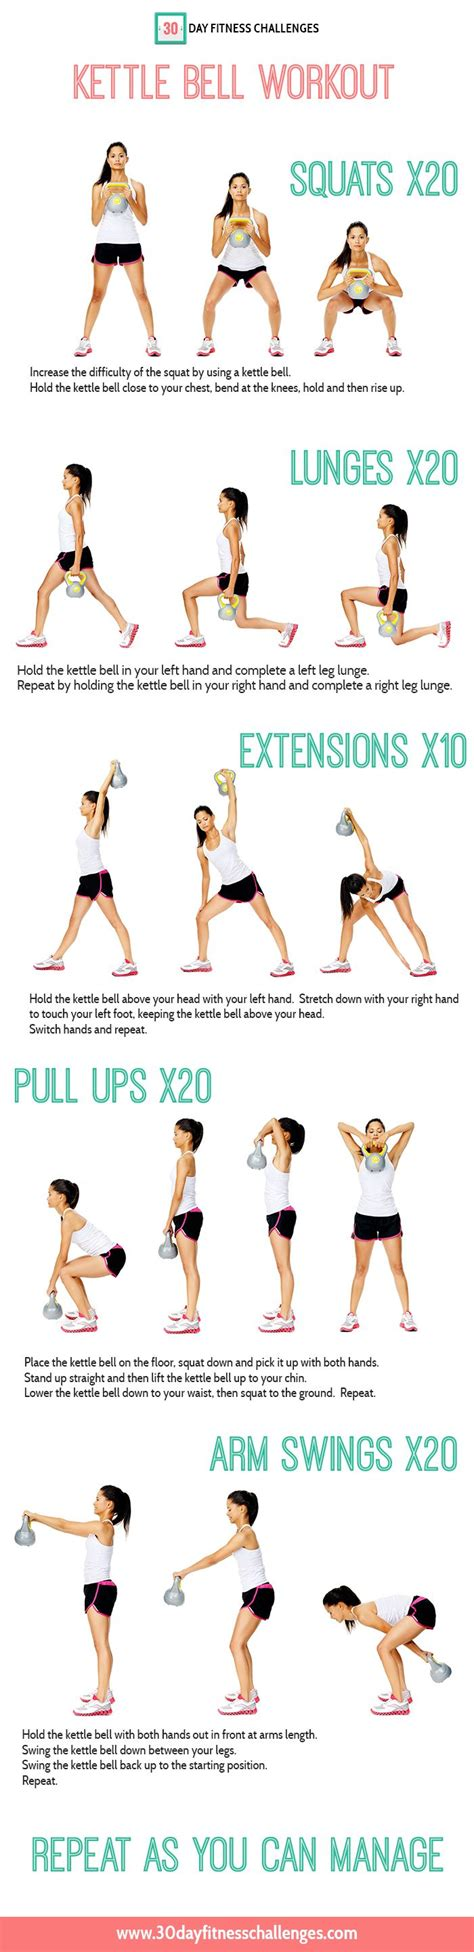 kettlebell workout kettle bell exercises workouts fitness chart challenge cardio abs exercise training challenges body motivation arms fat printable weight